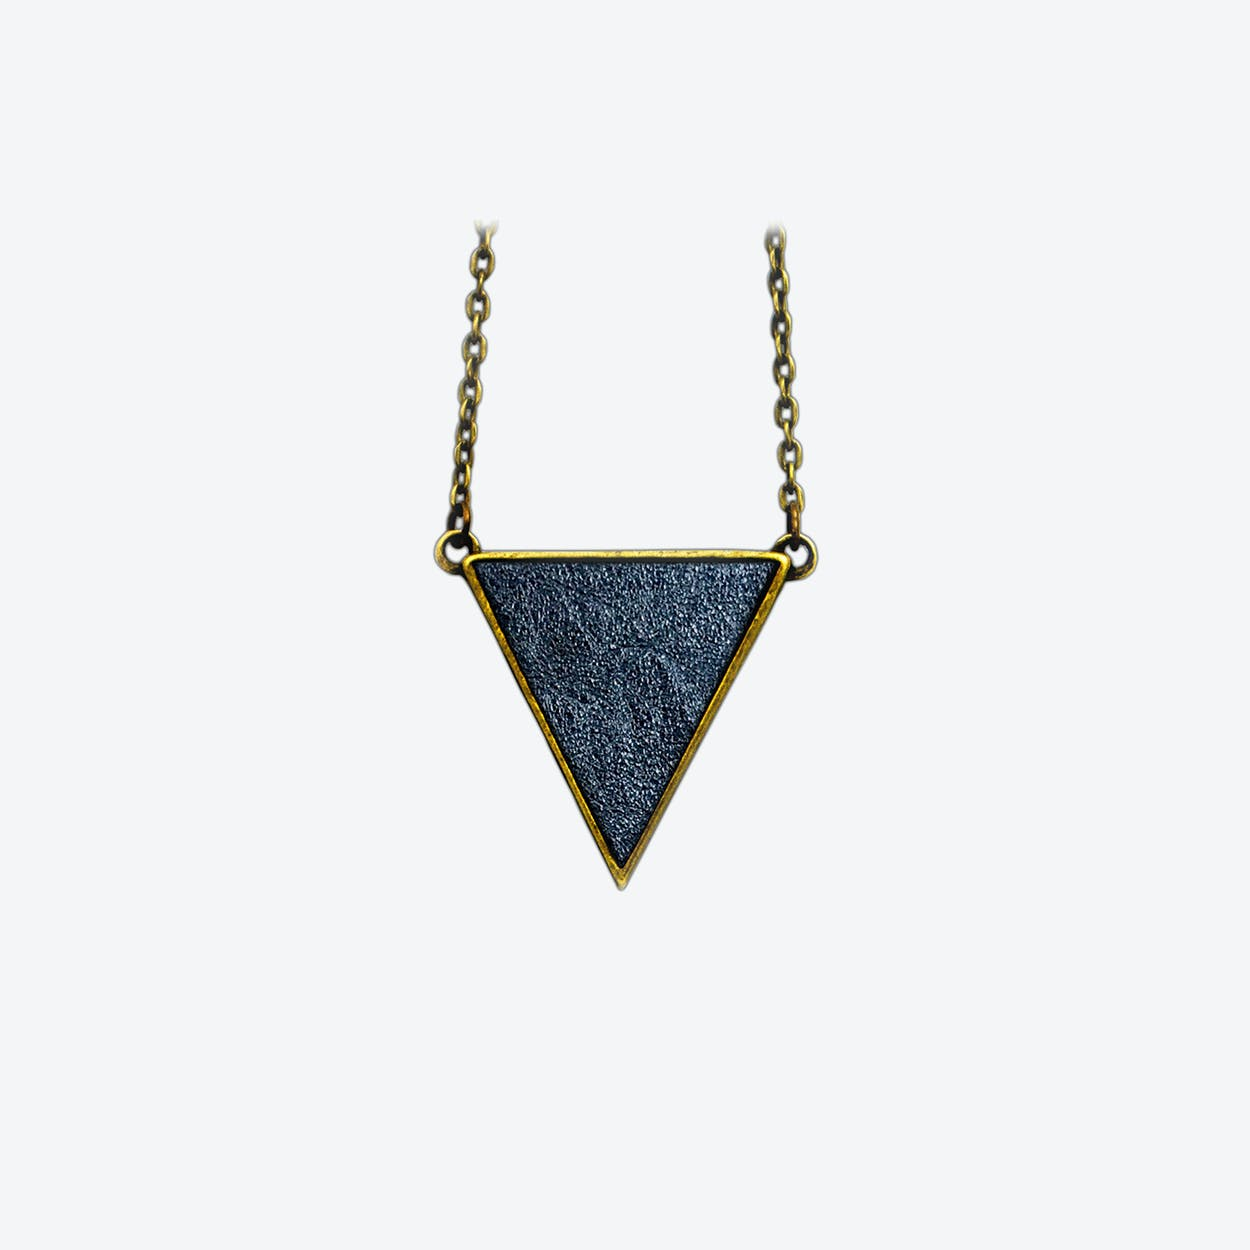 Leather Triangle Necklace in Midnight Blue